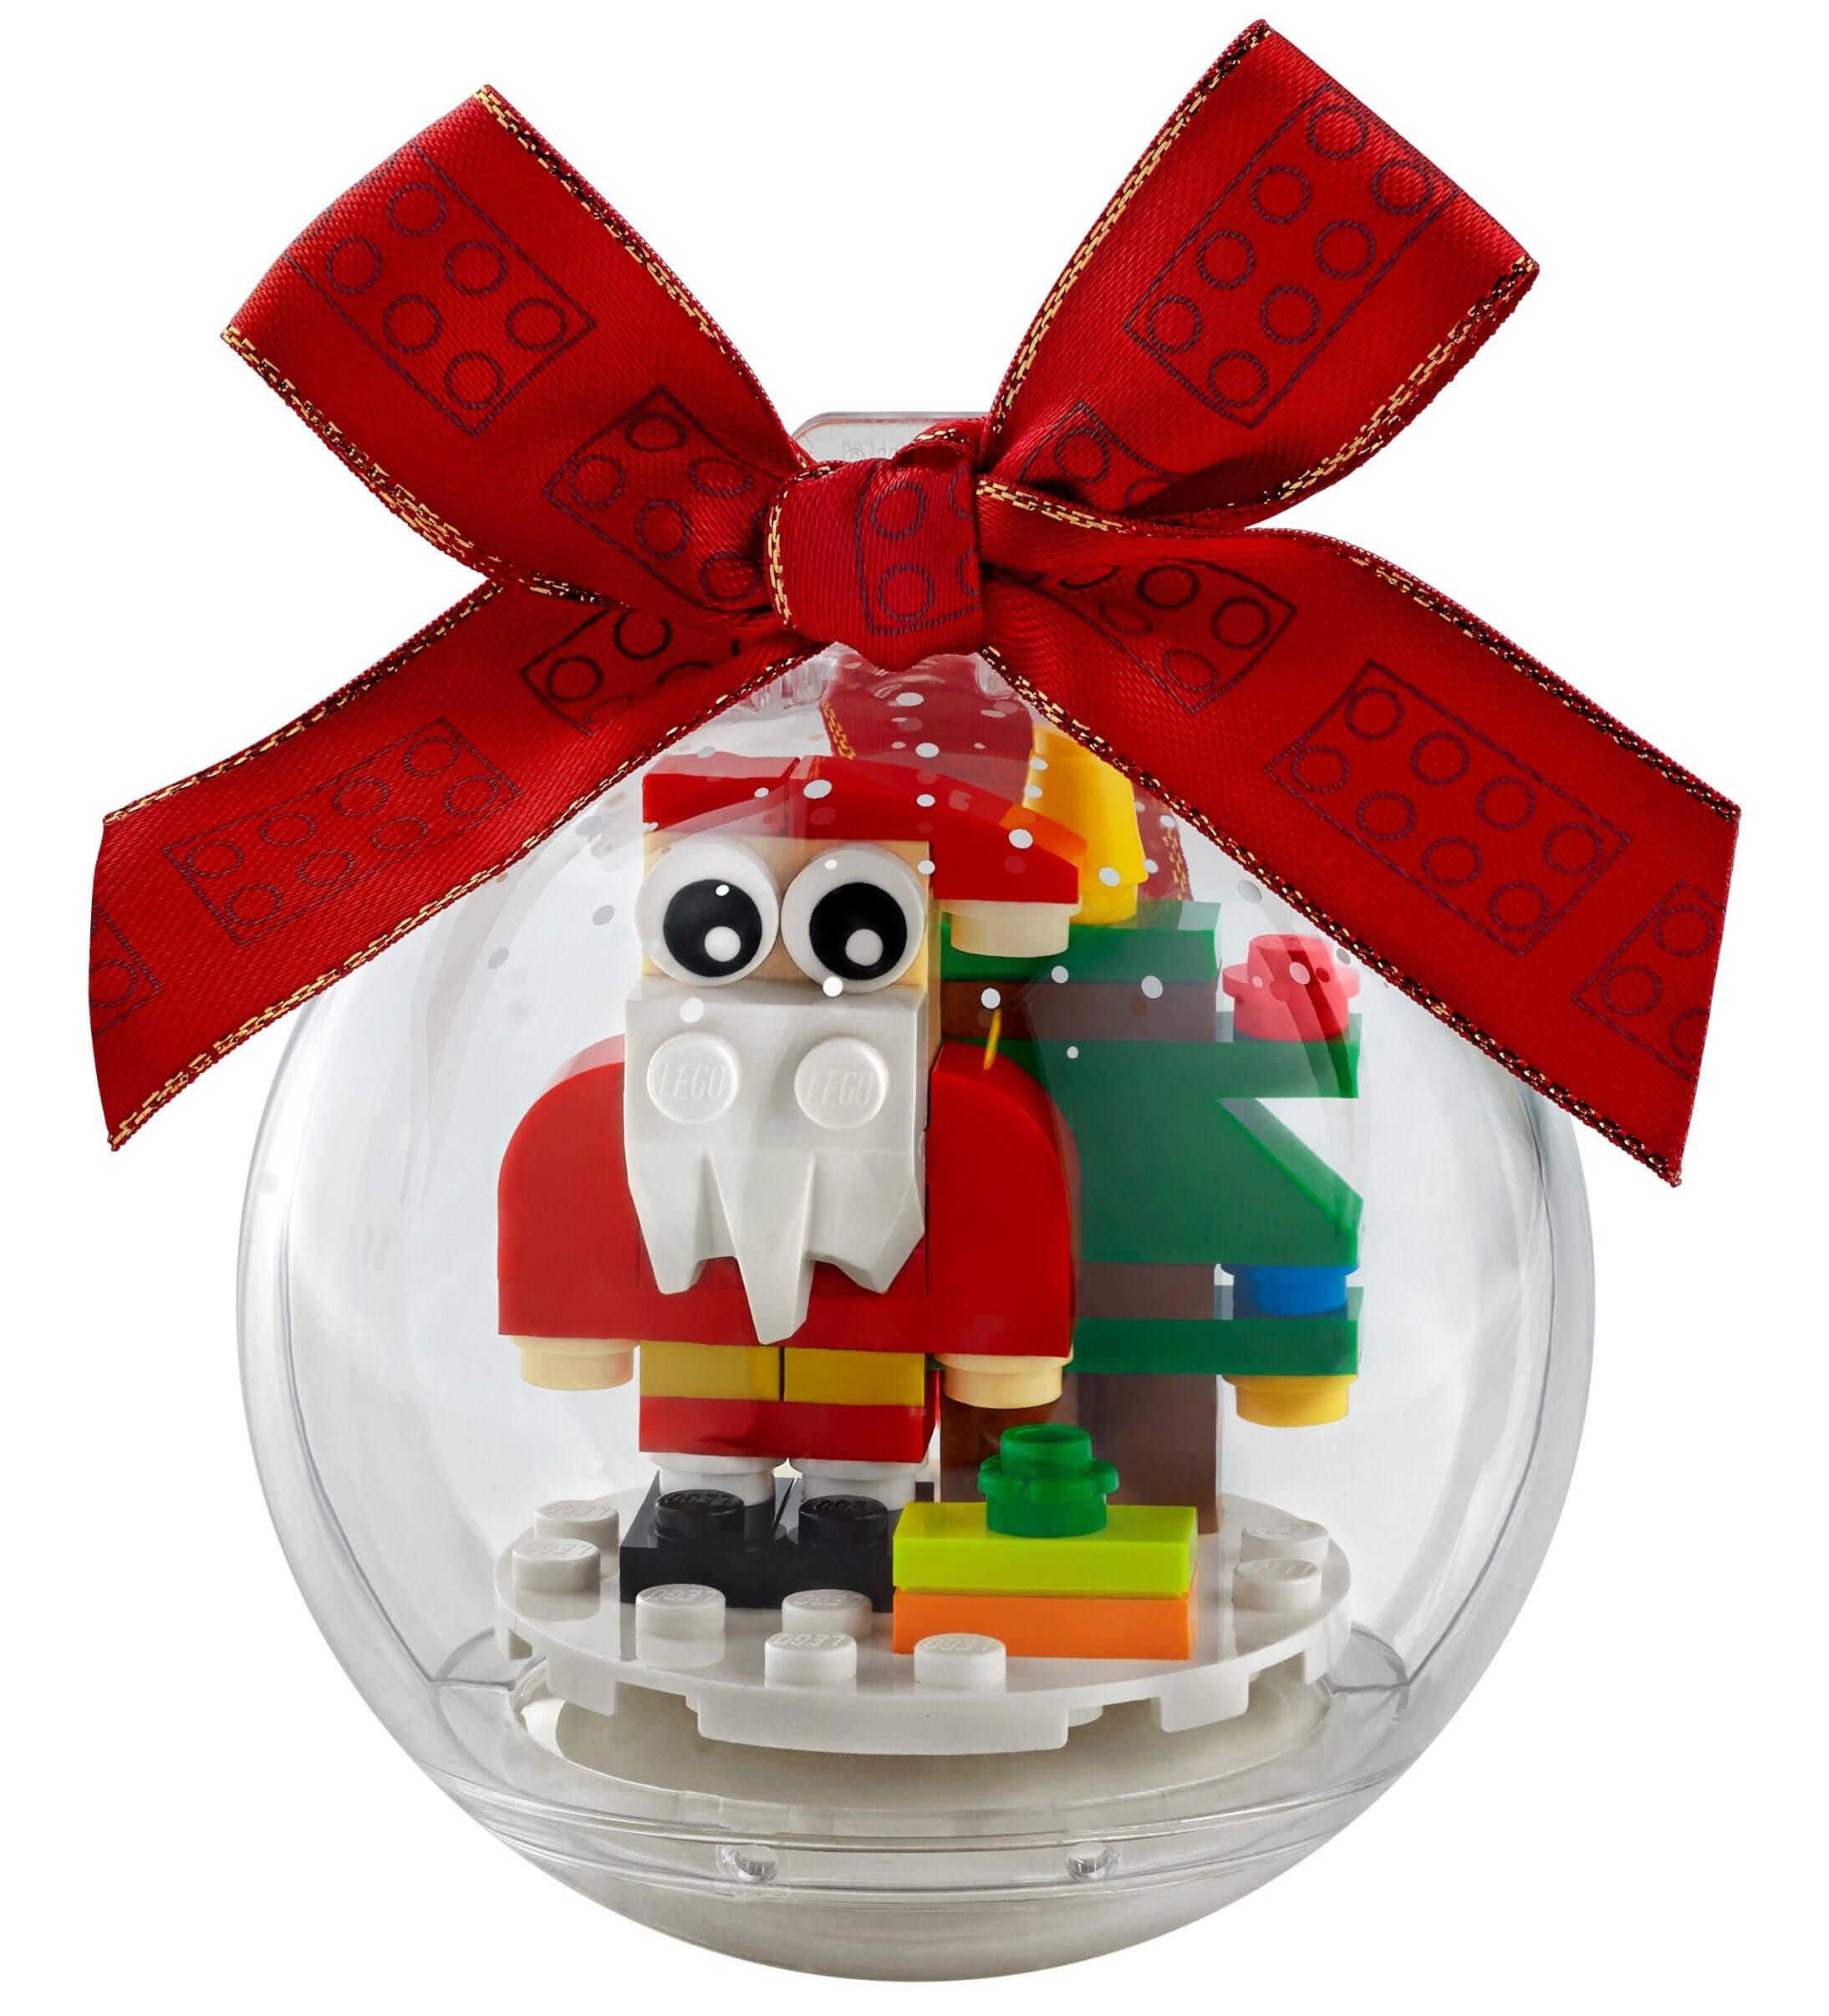 LEGO 854037 Christmas Ornament Santa